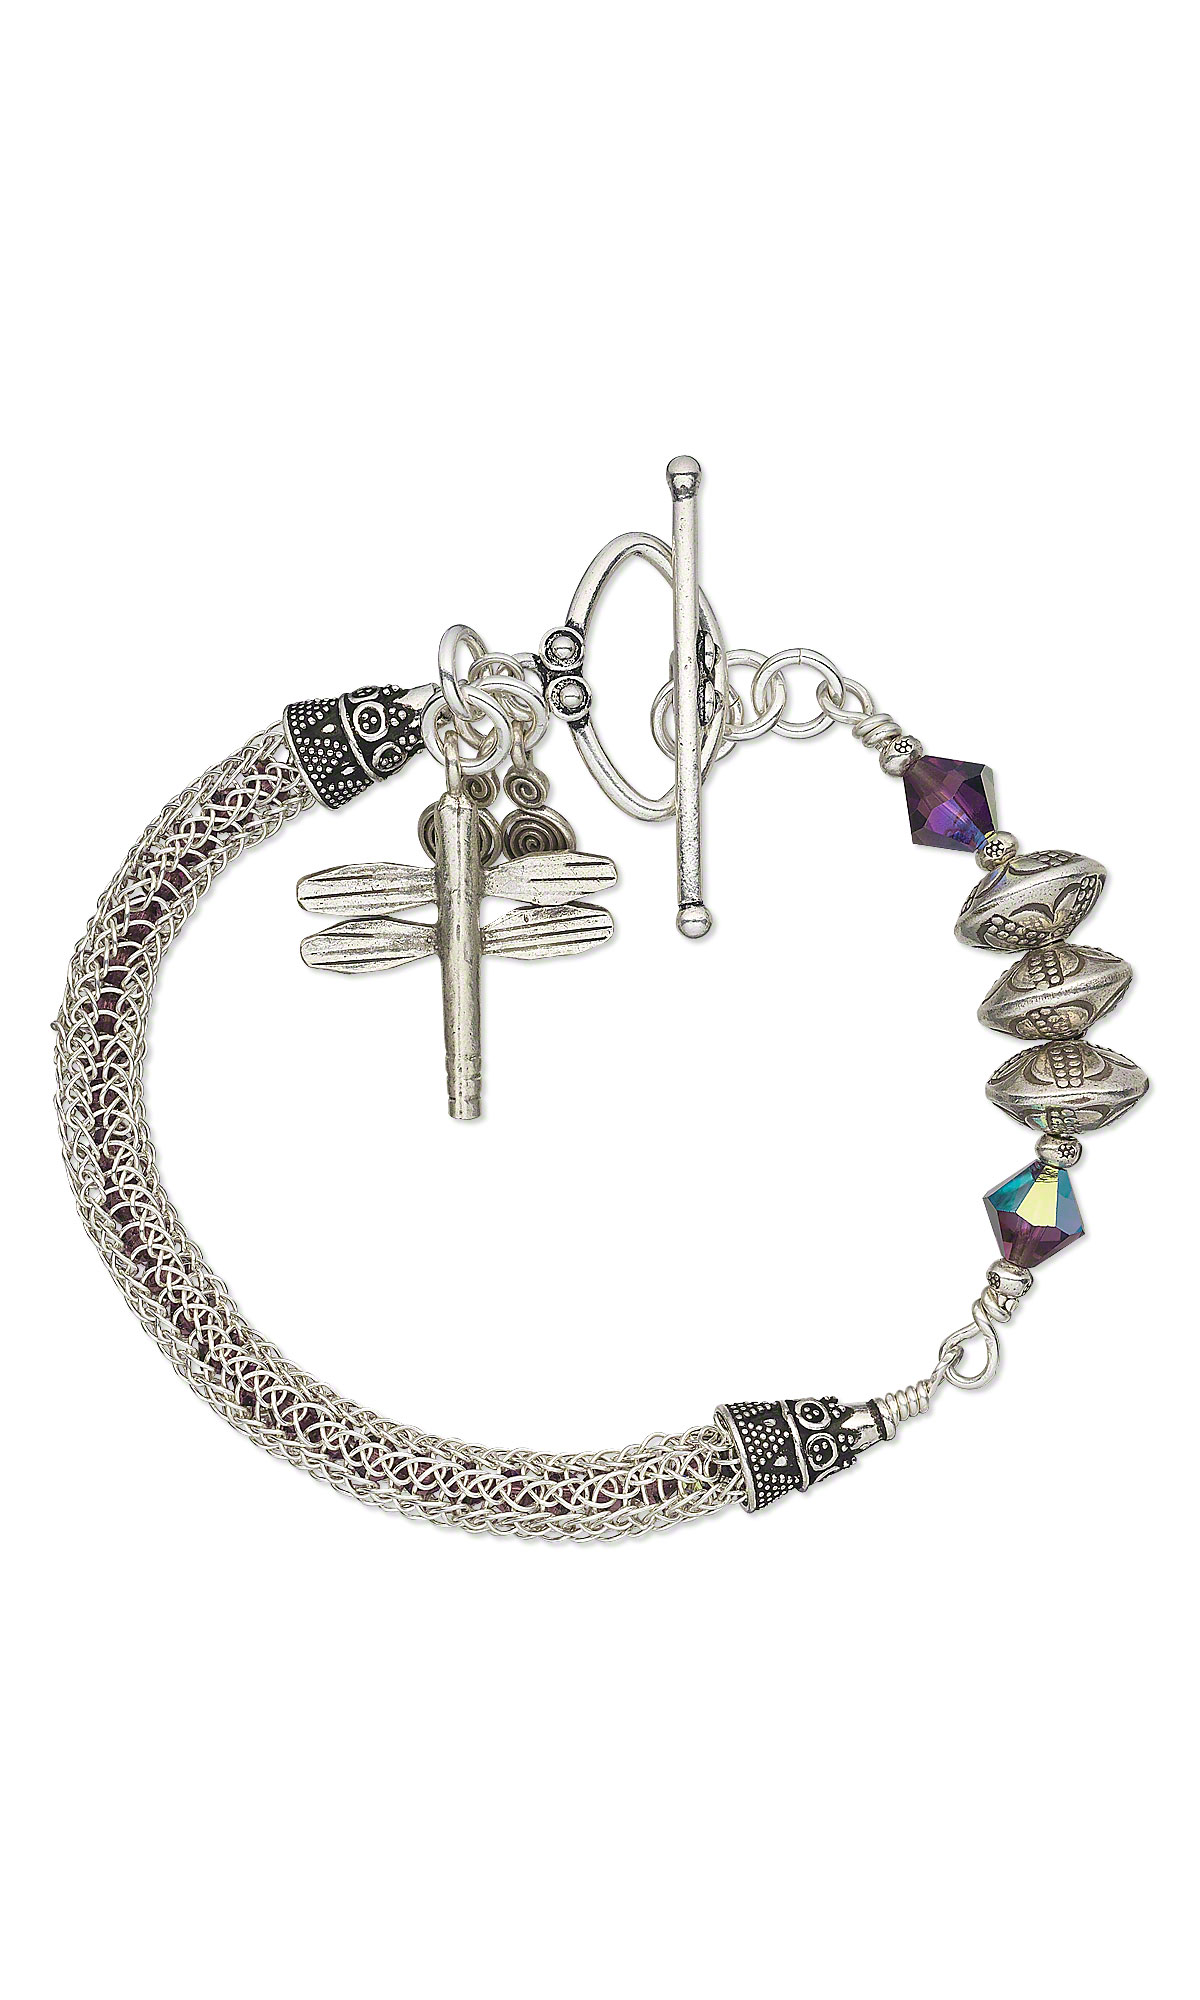 Jewelry Design - Bracelet with Hill Tribes Fine Silver Beads ...